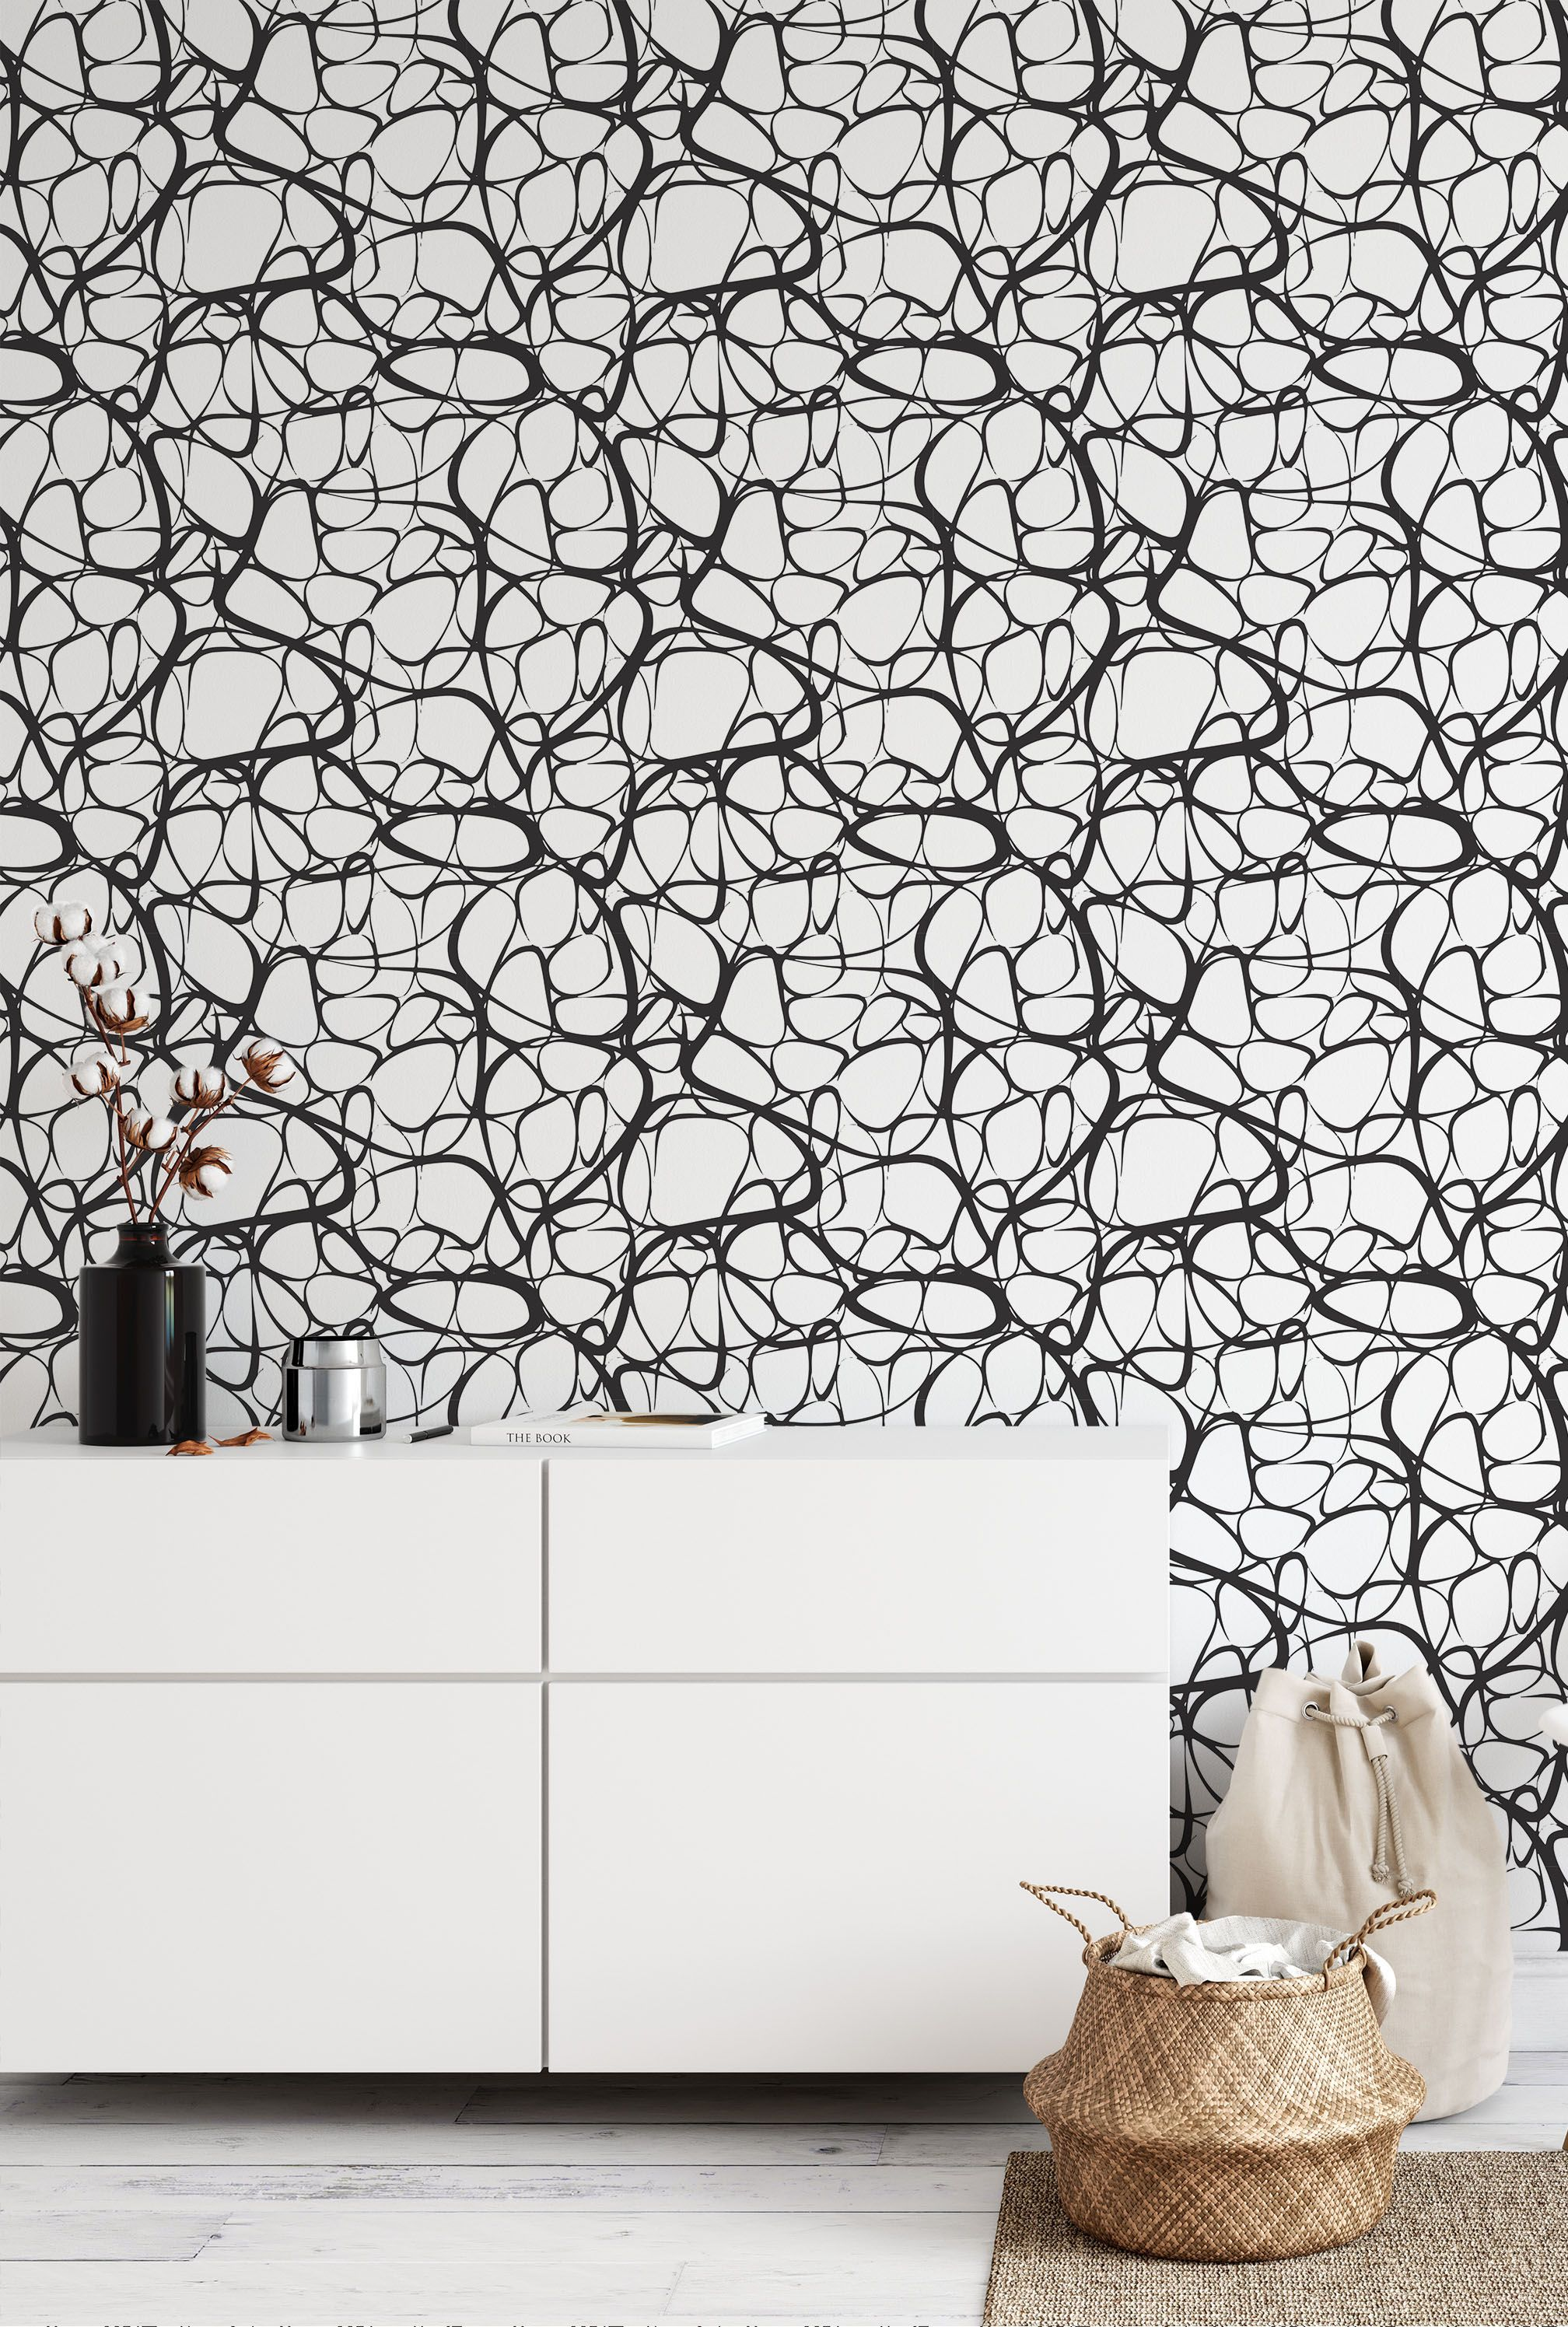 Removable Wallpaper Peel And Stick Wallpaper Wall Paper Wall Mural Abstract Wallpaper B095 Scandinavian Wallpaper Lines Wallpaper Wall Wallpaper